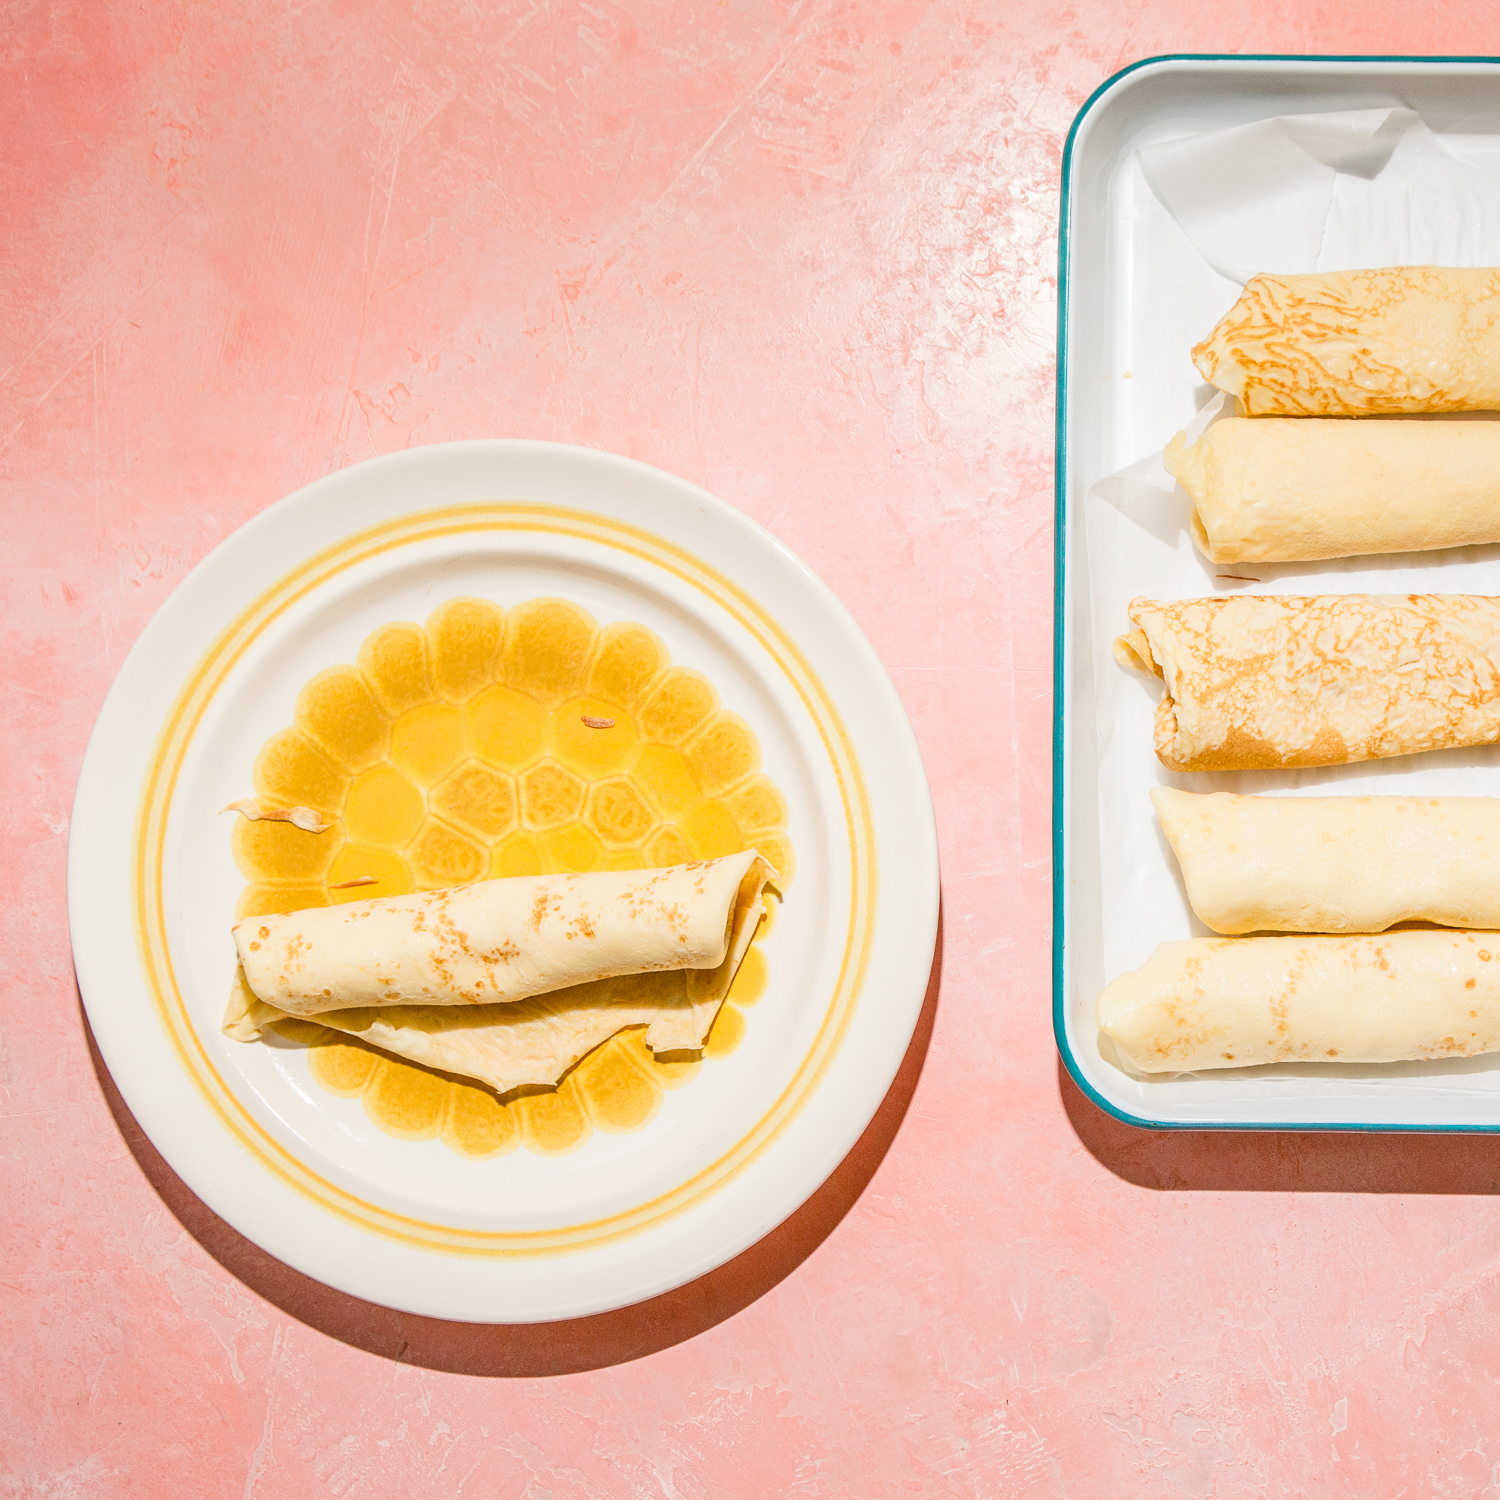 Recipe for Cherry Cheese Blintz